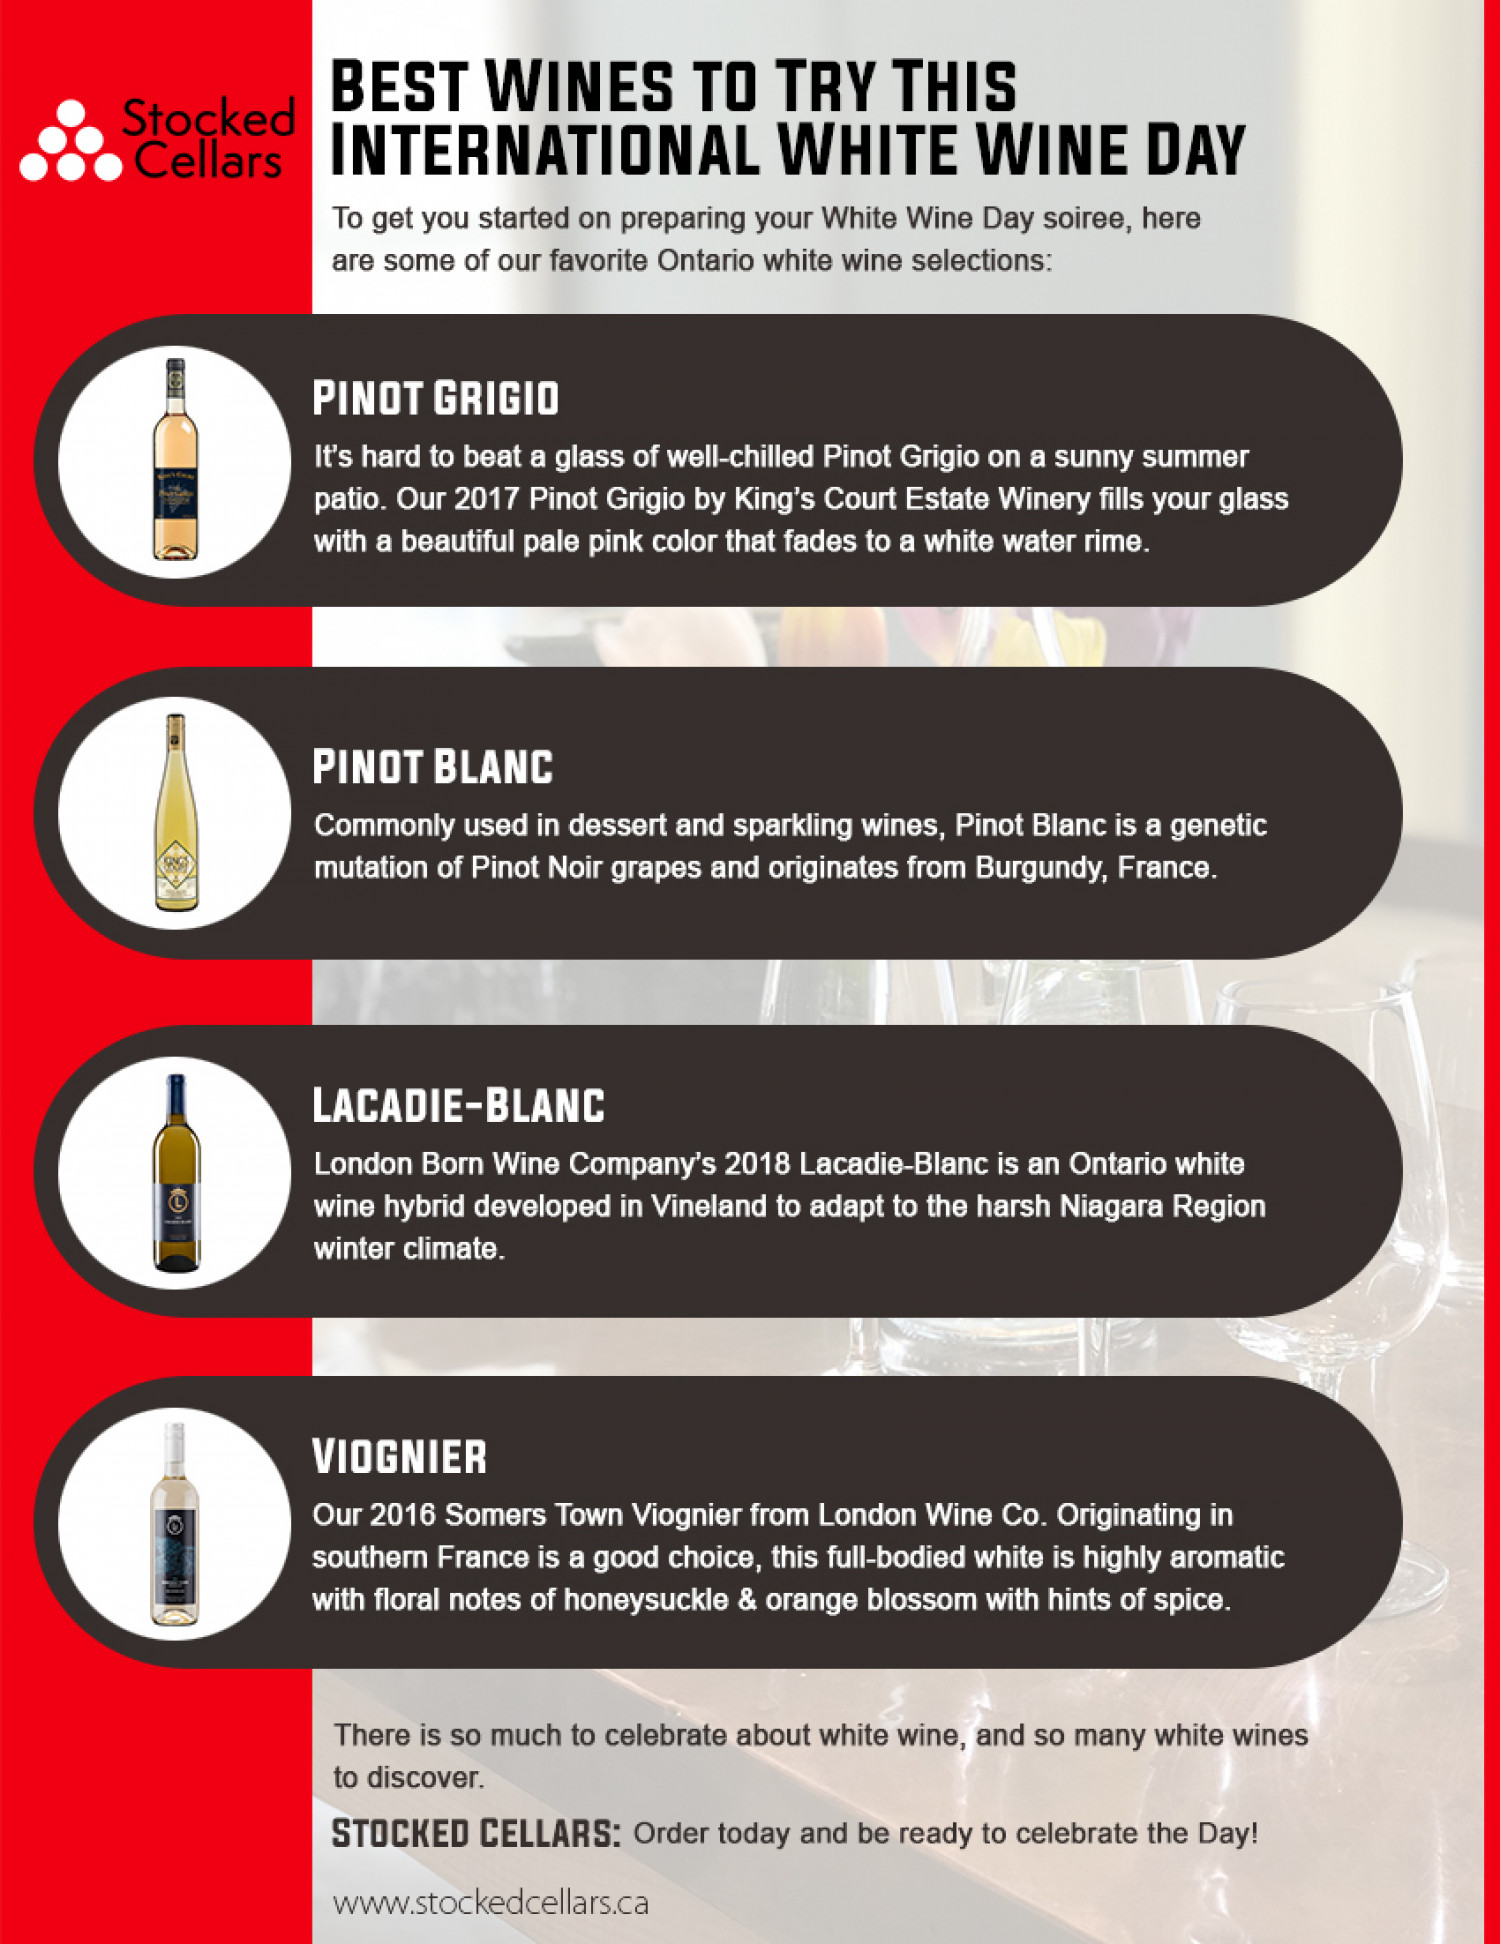 Best Wines to Try This International White Wine Day Infographic